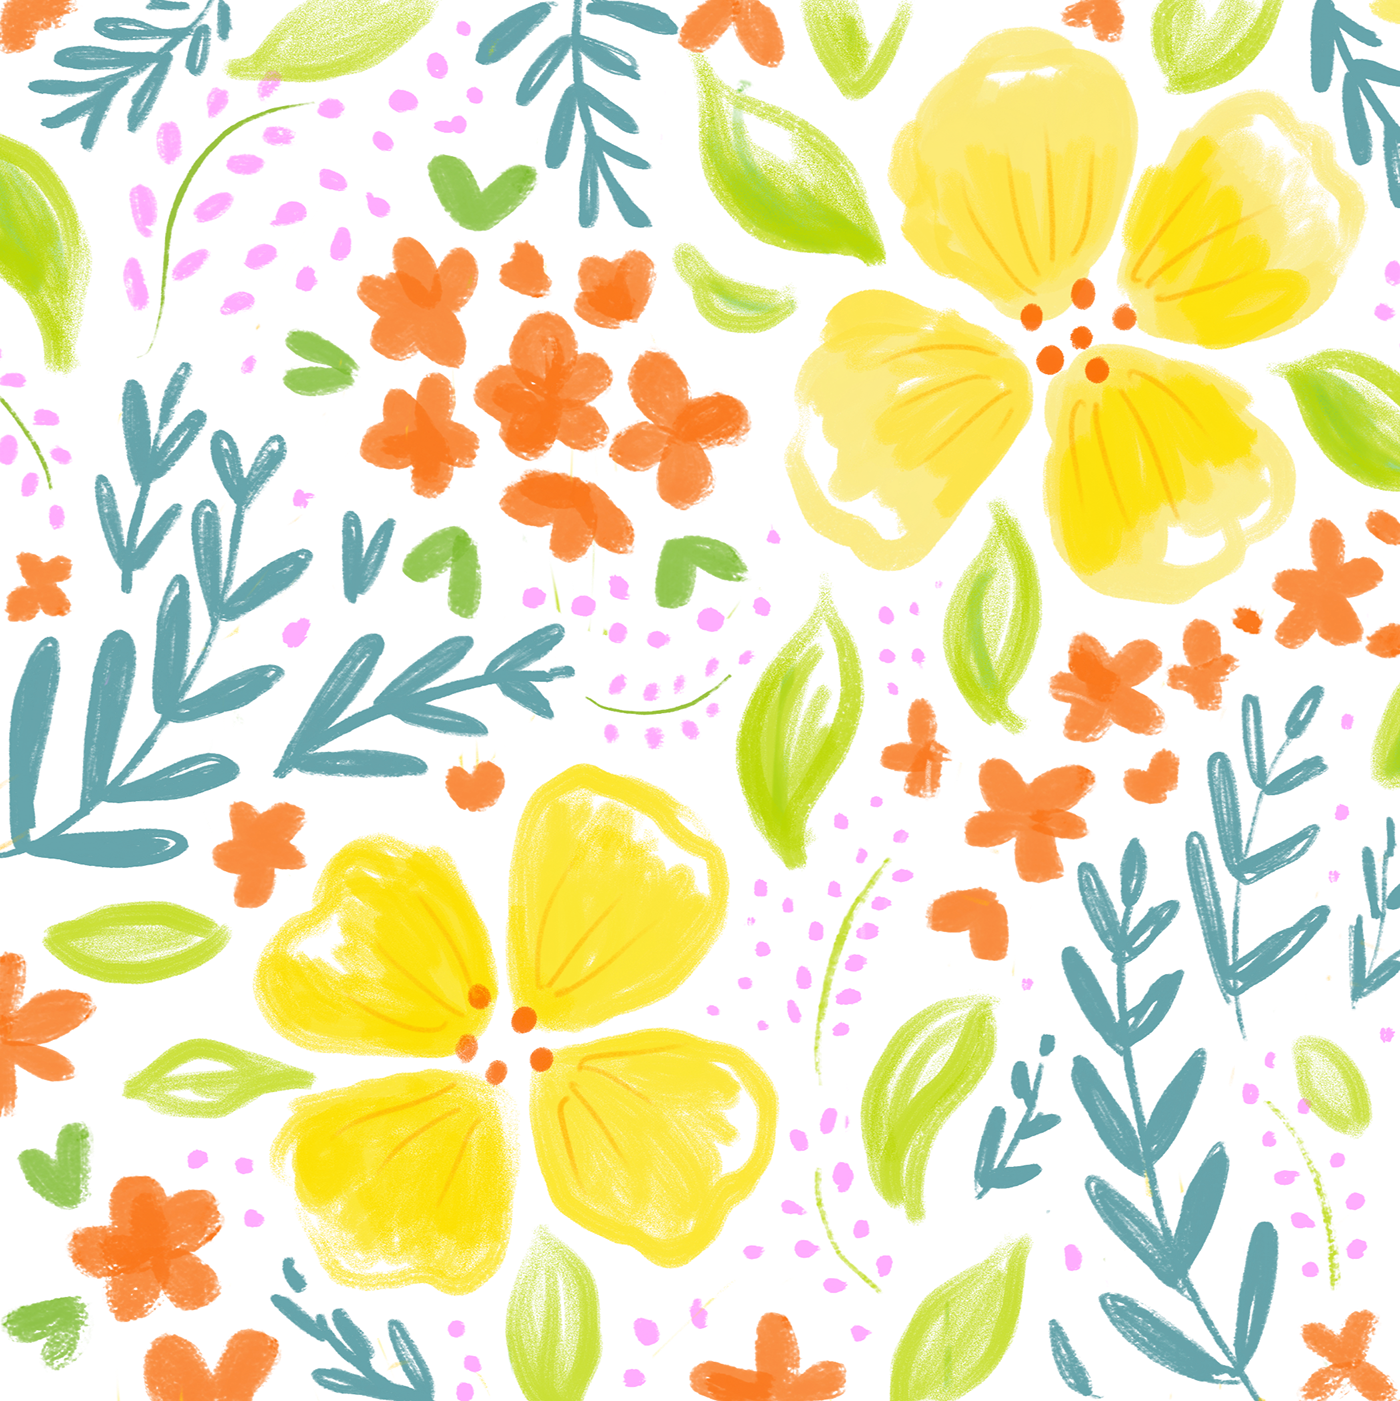 Floral pattern png. Bright and bold summer